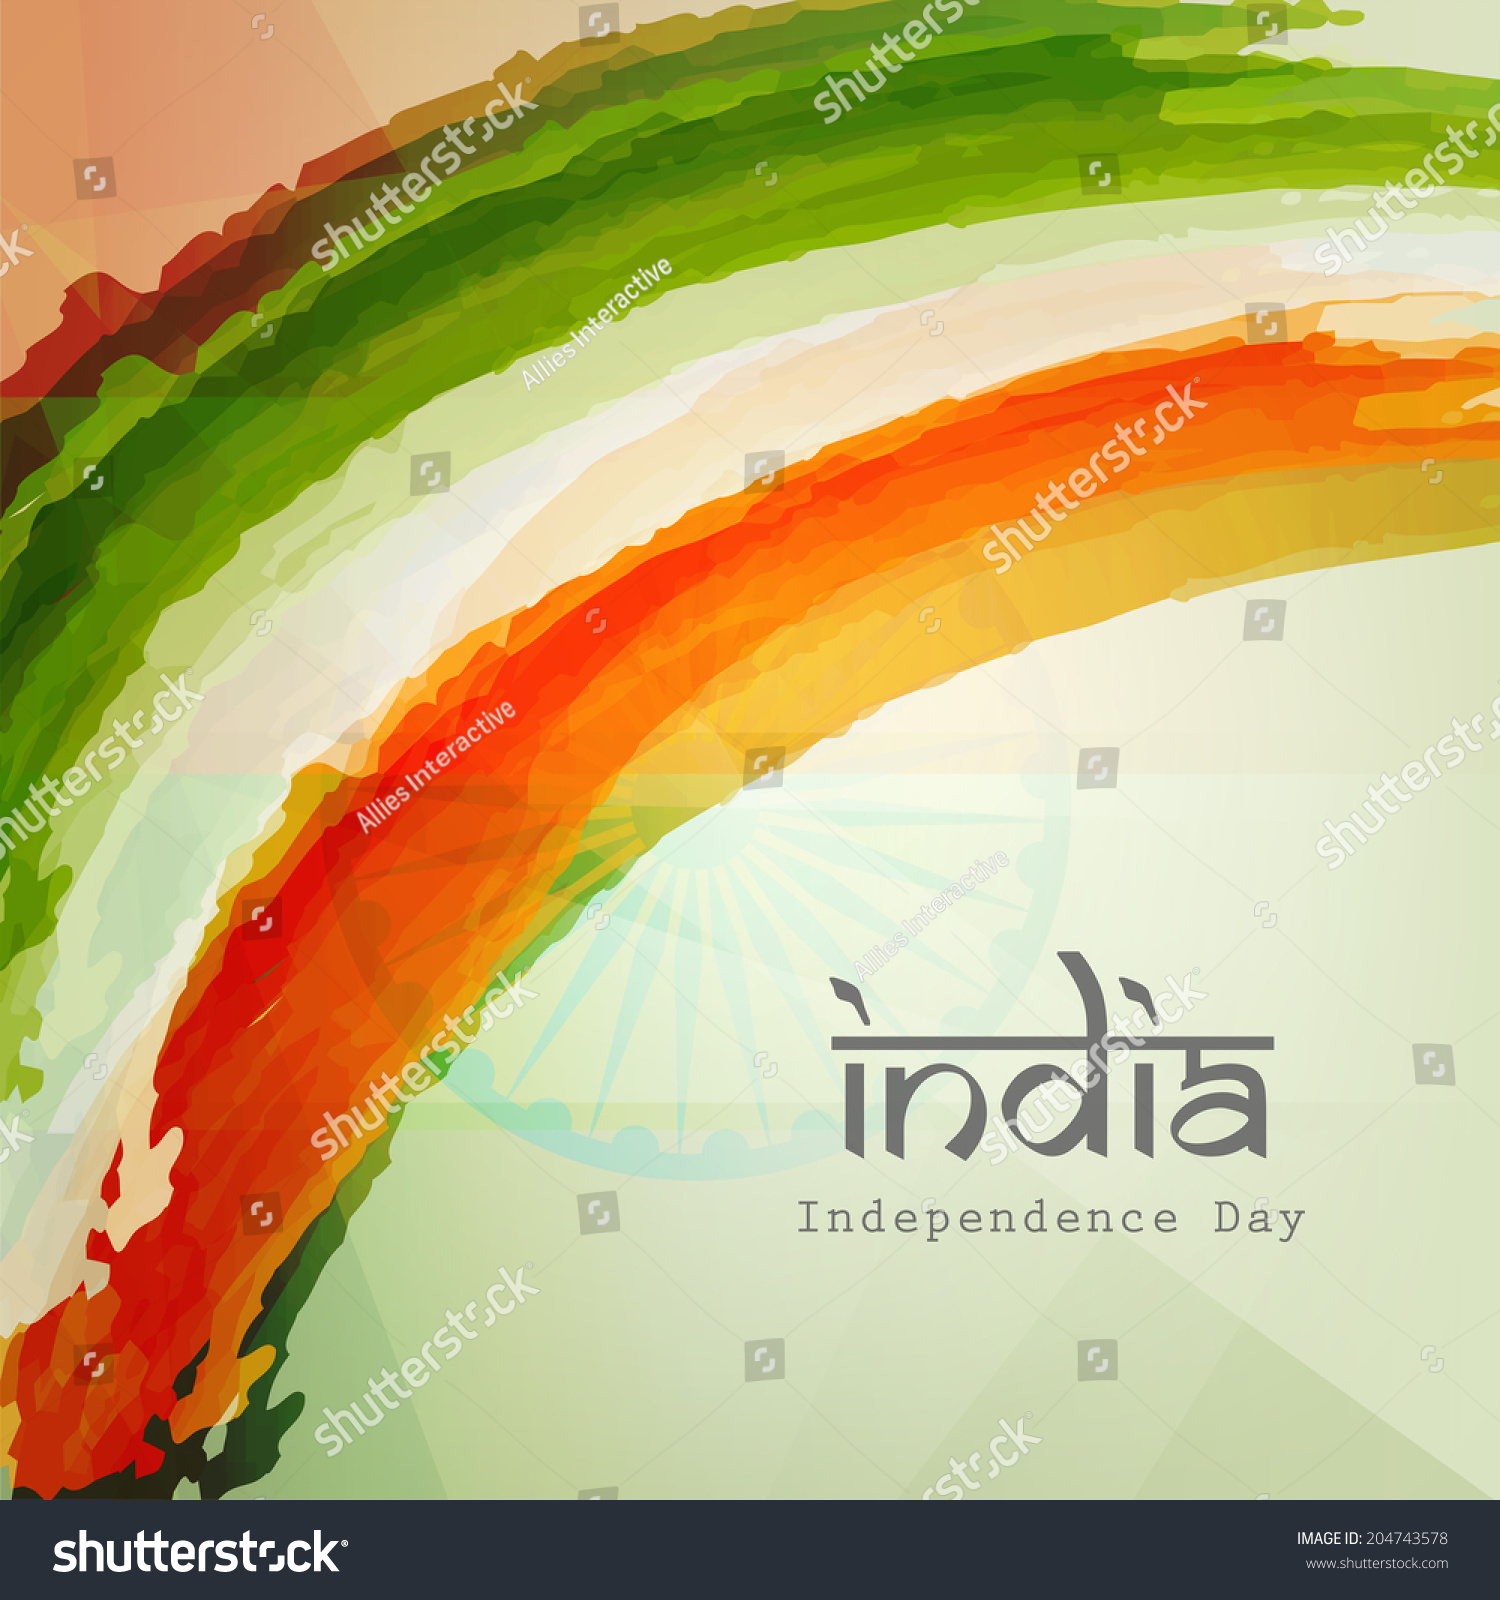 Stylish text india on indian national flag colors for Th background color